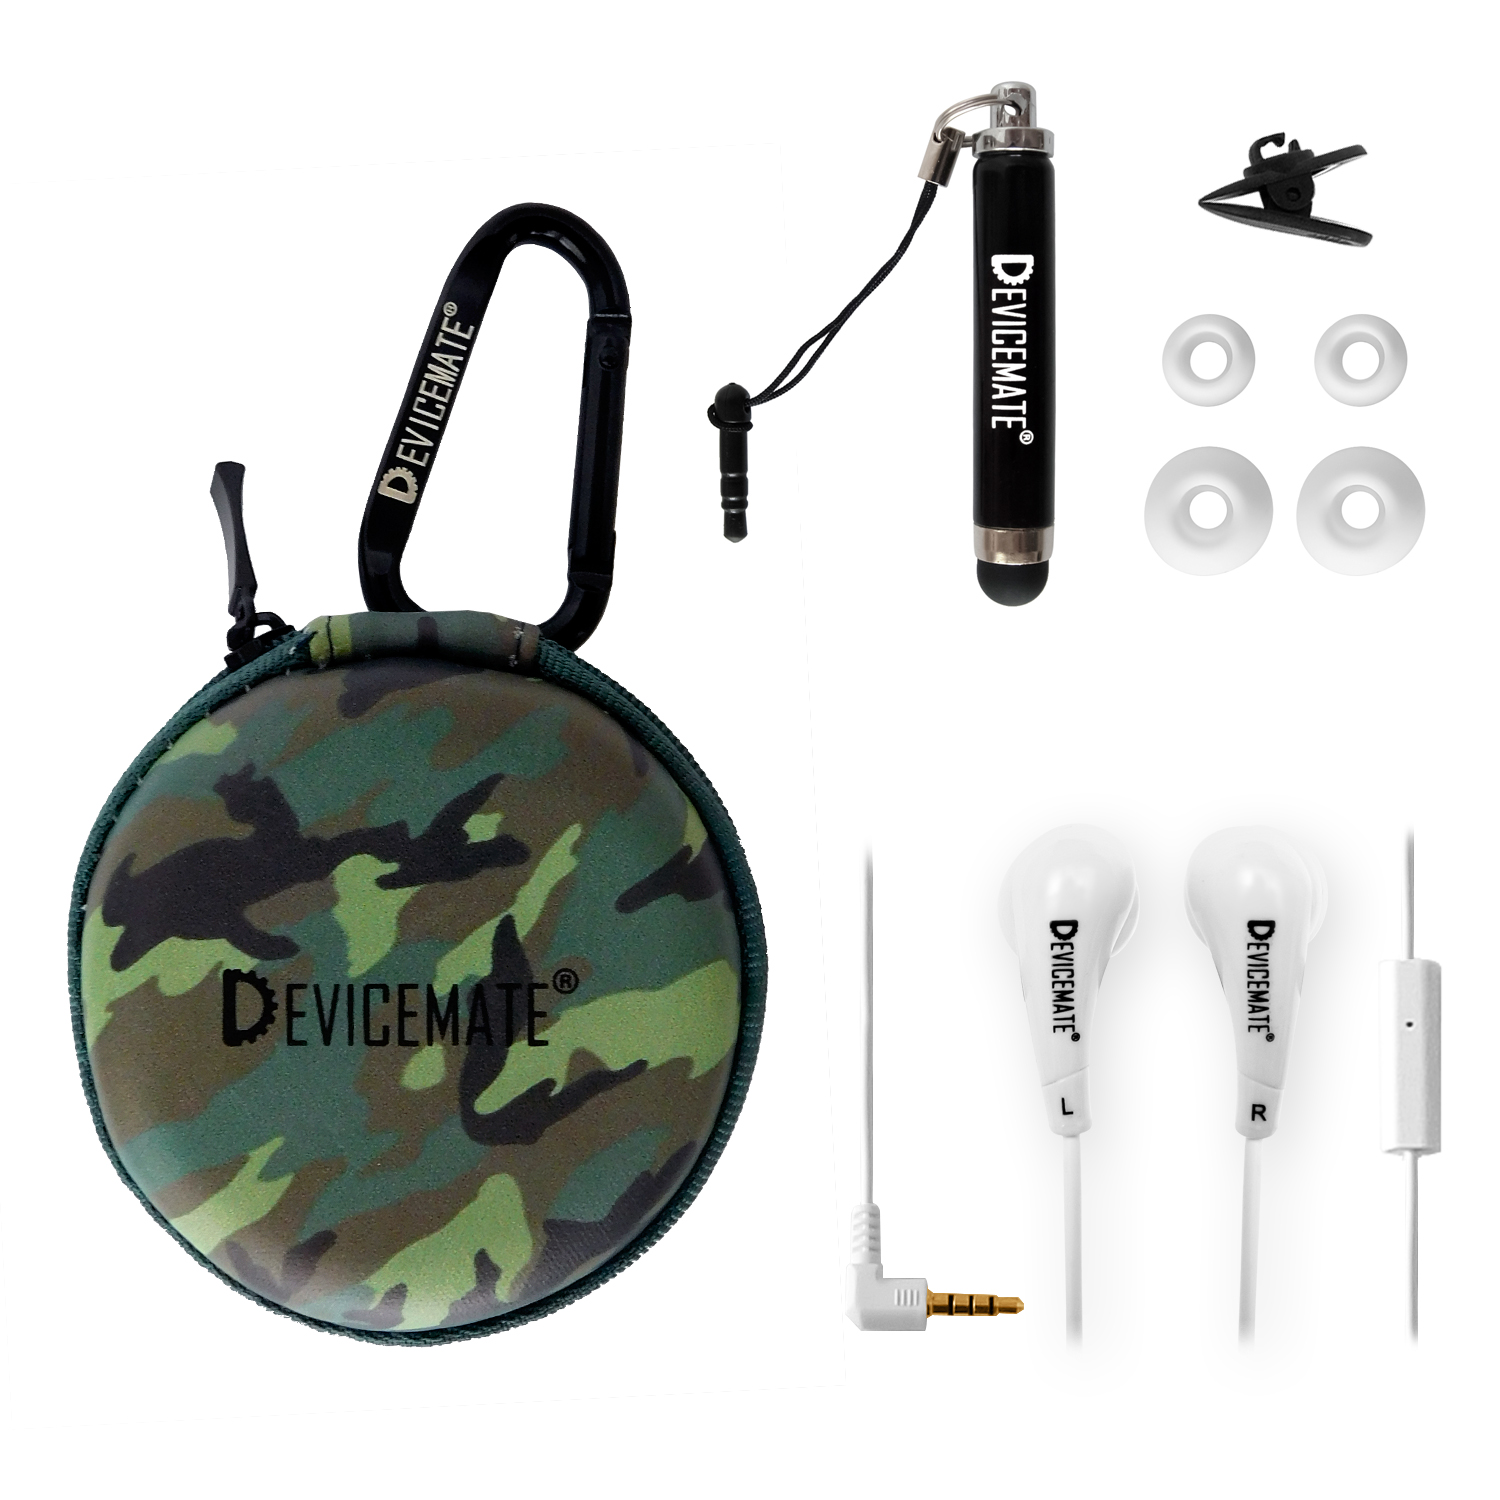 Devicemate SD 455-GCM Earphones w/mic for iPhone [Grn Camo] Case